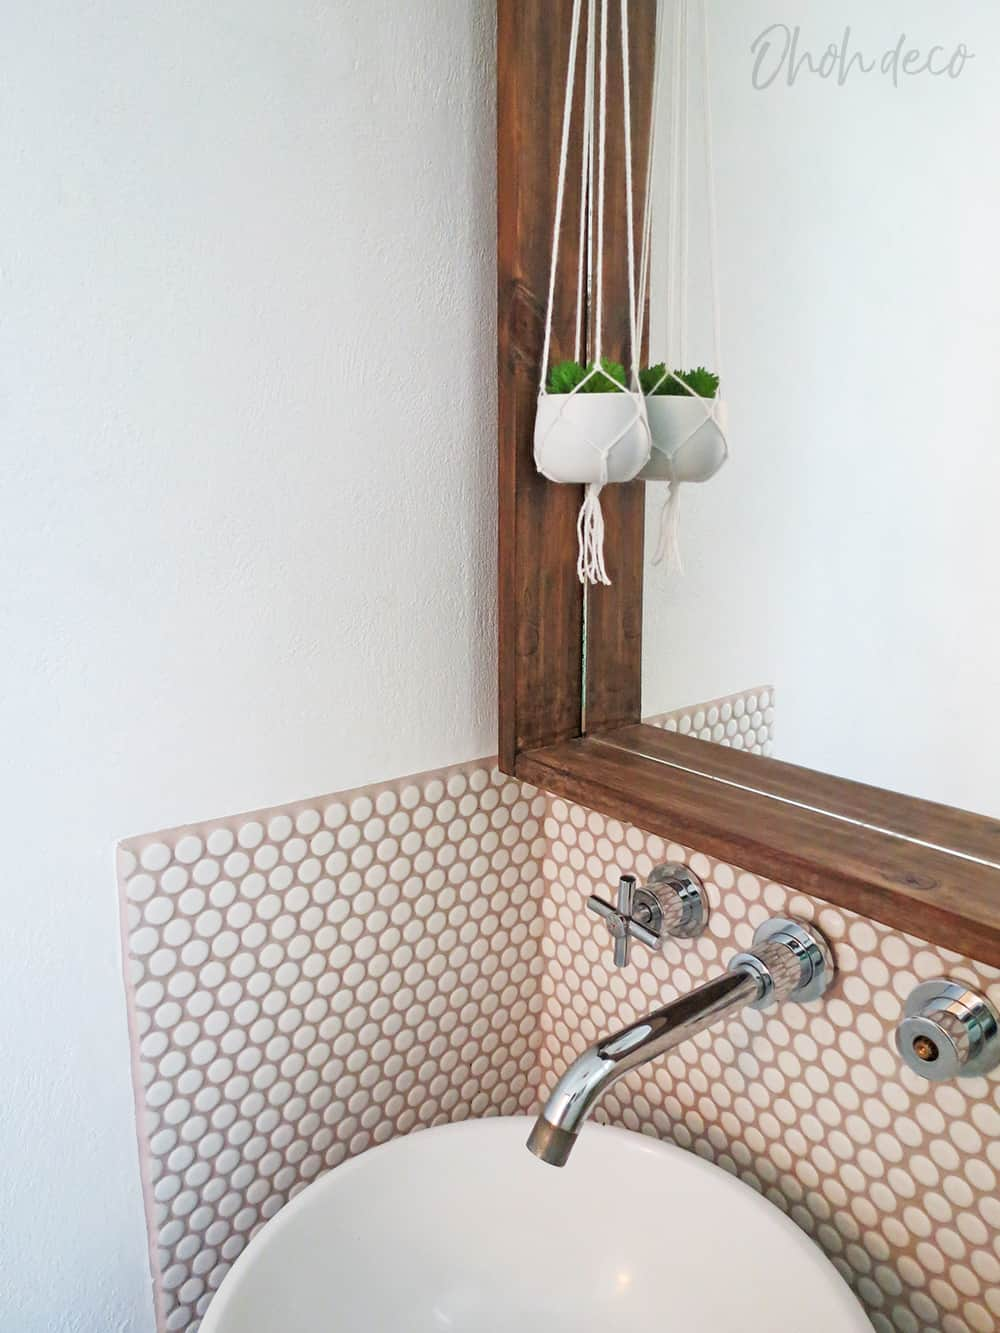 How to place a mosaic tiles backsplash